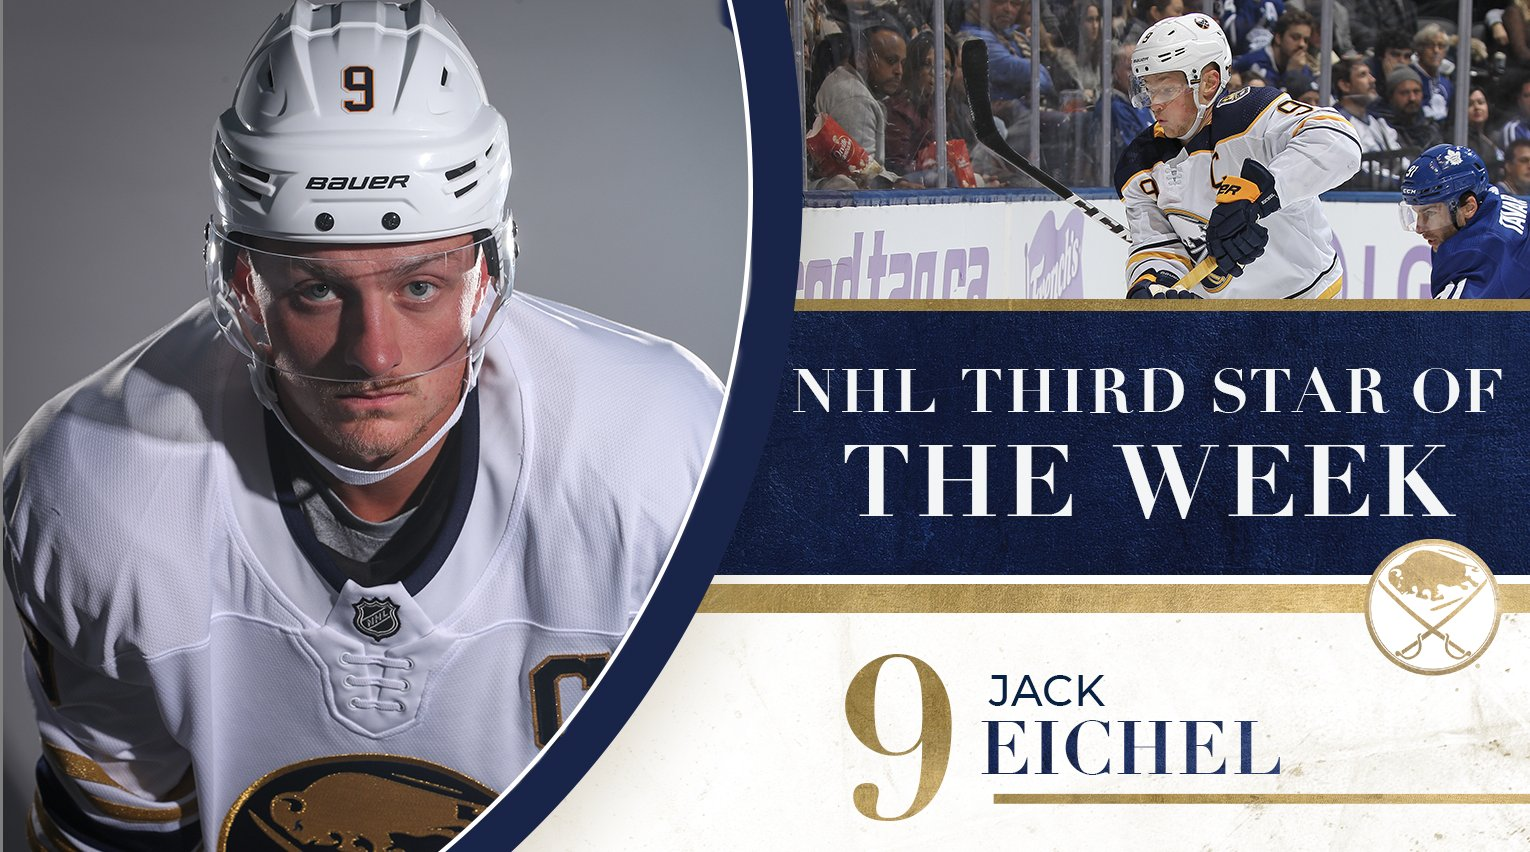 Point streak helps propel Eichel to NHL 3rd Star of the Week honors